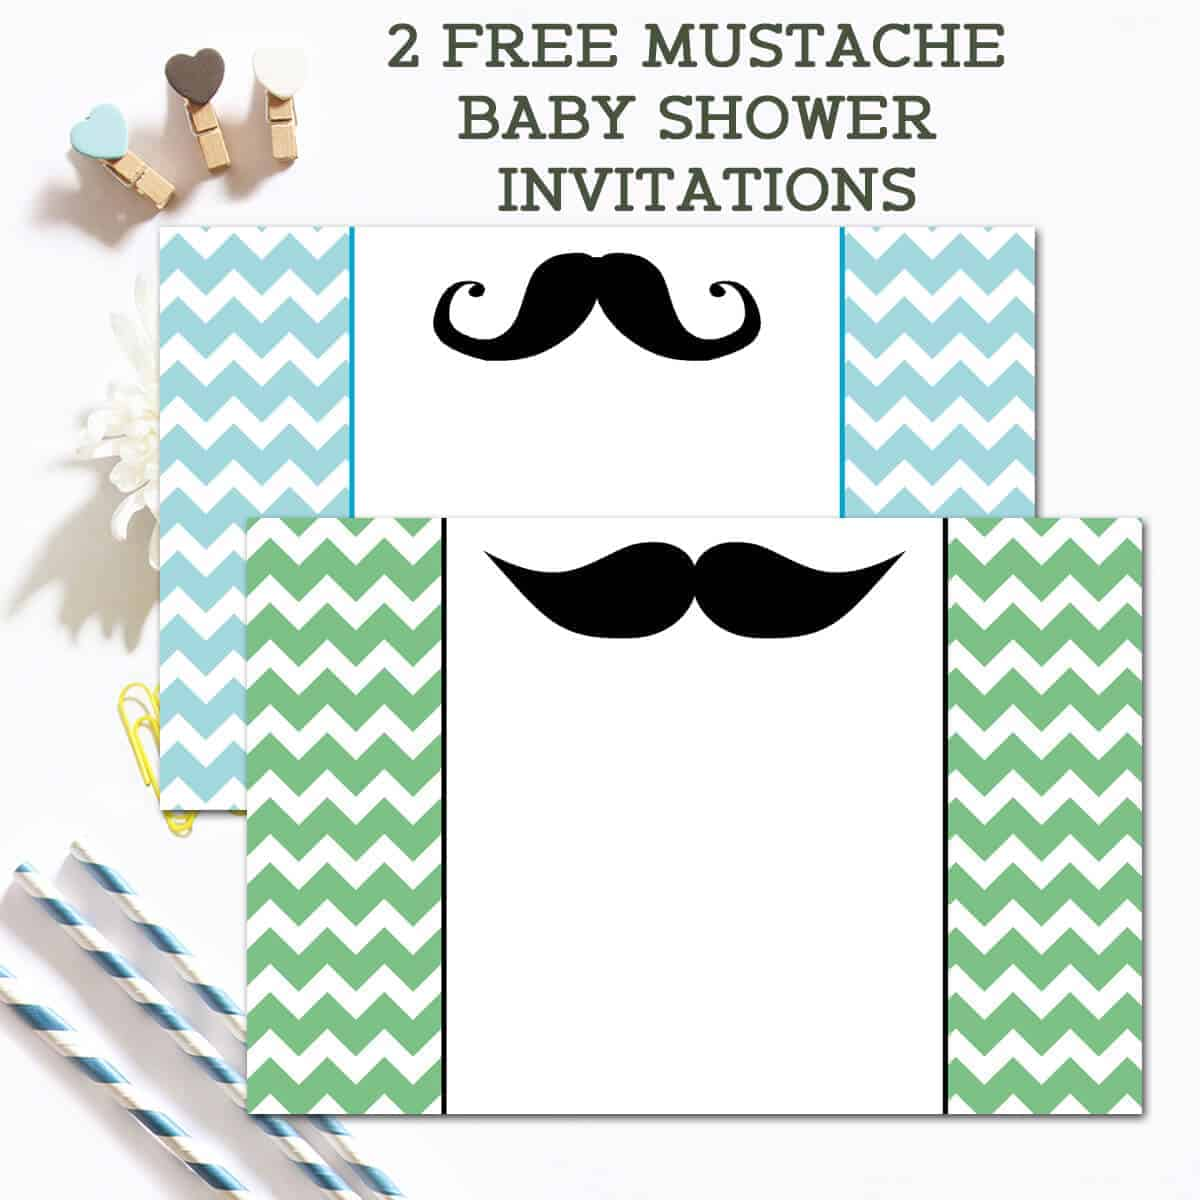 graphic relating to Free Printable Mustache Baby Shower Invitations called Absolutely free Mustache Child Shower Invites - Ilonas Pion